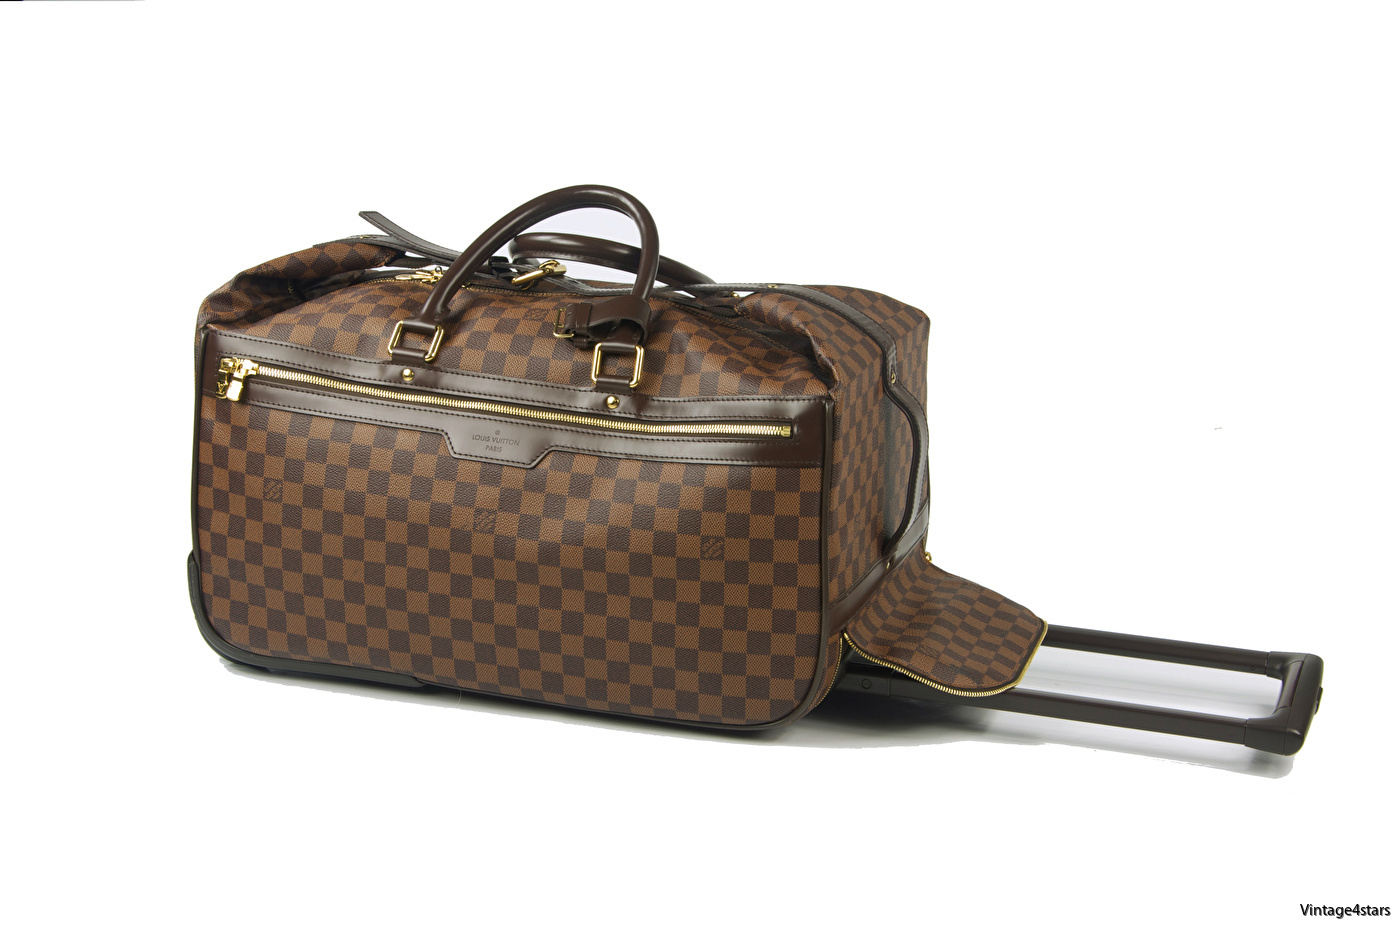 Louis Vuitton Eole 50 1